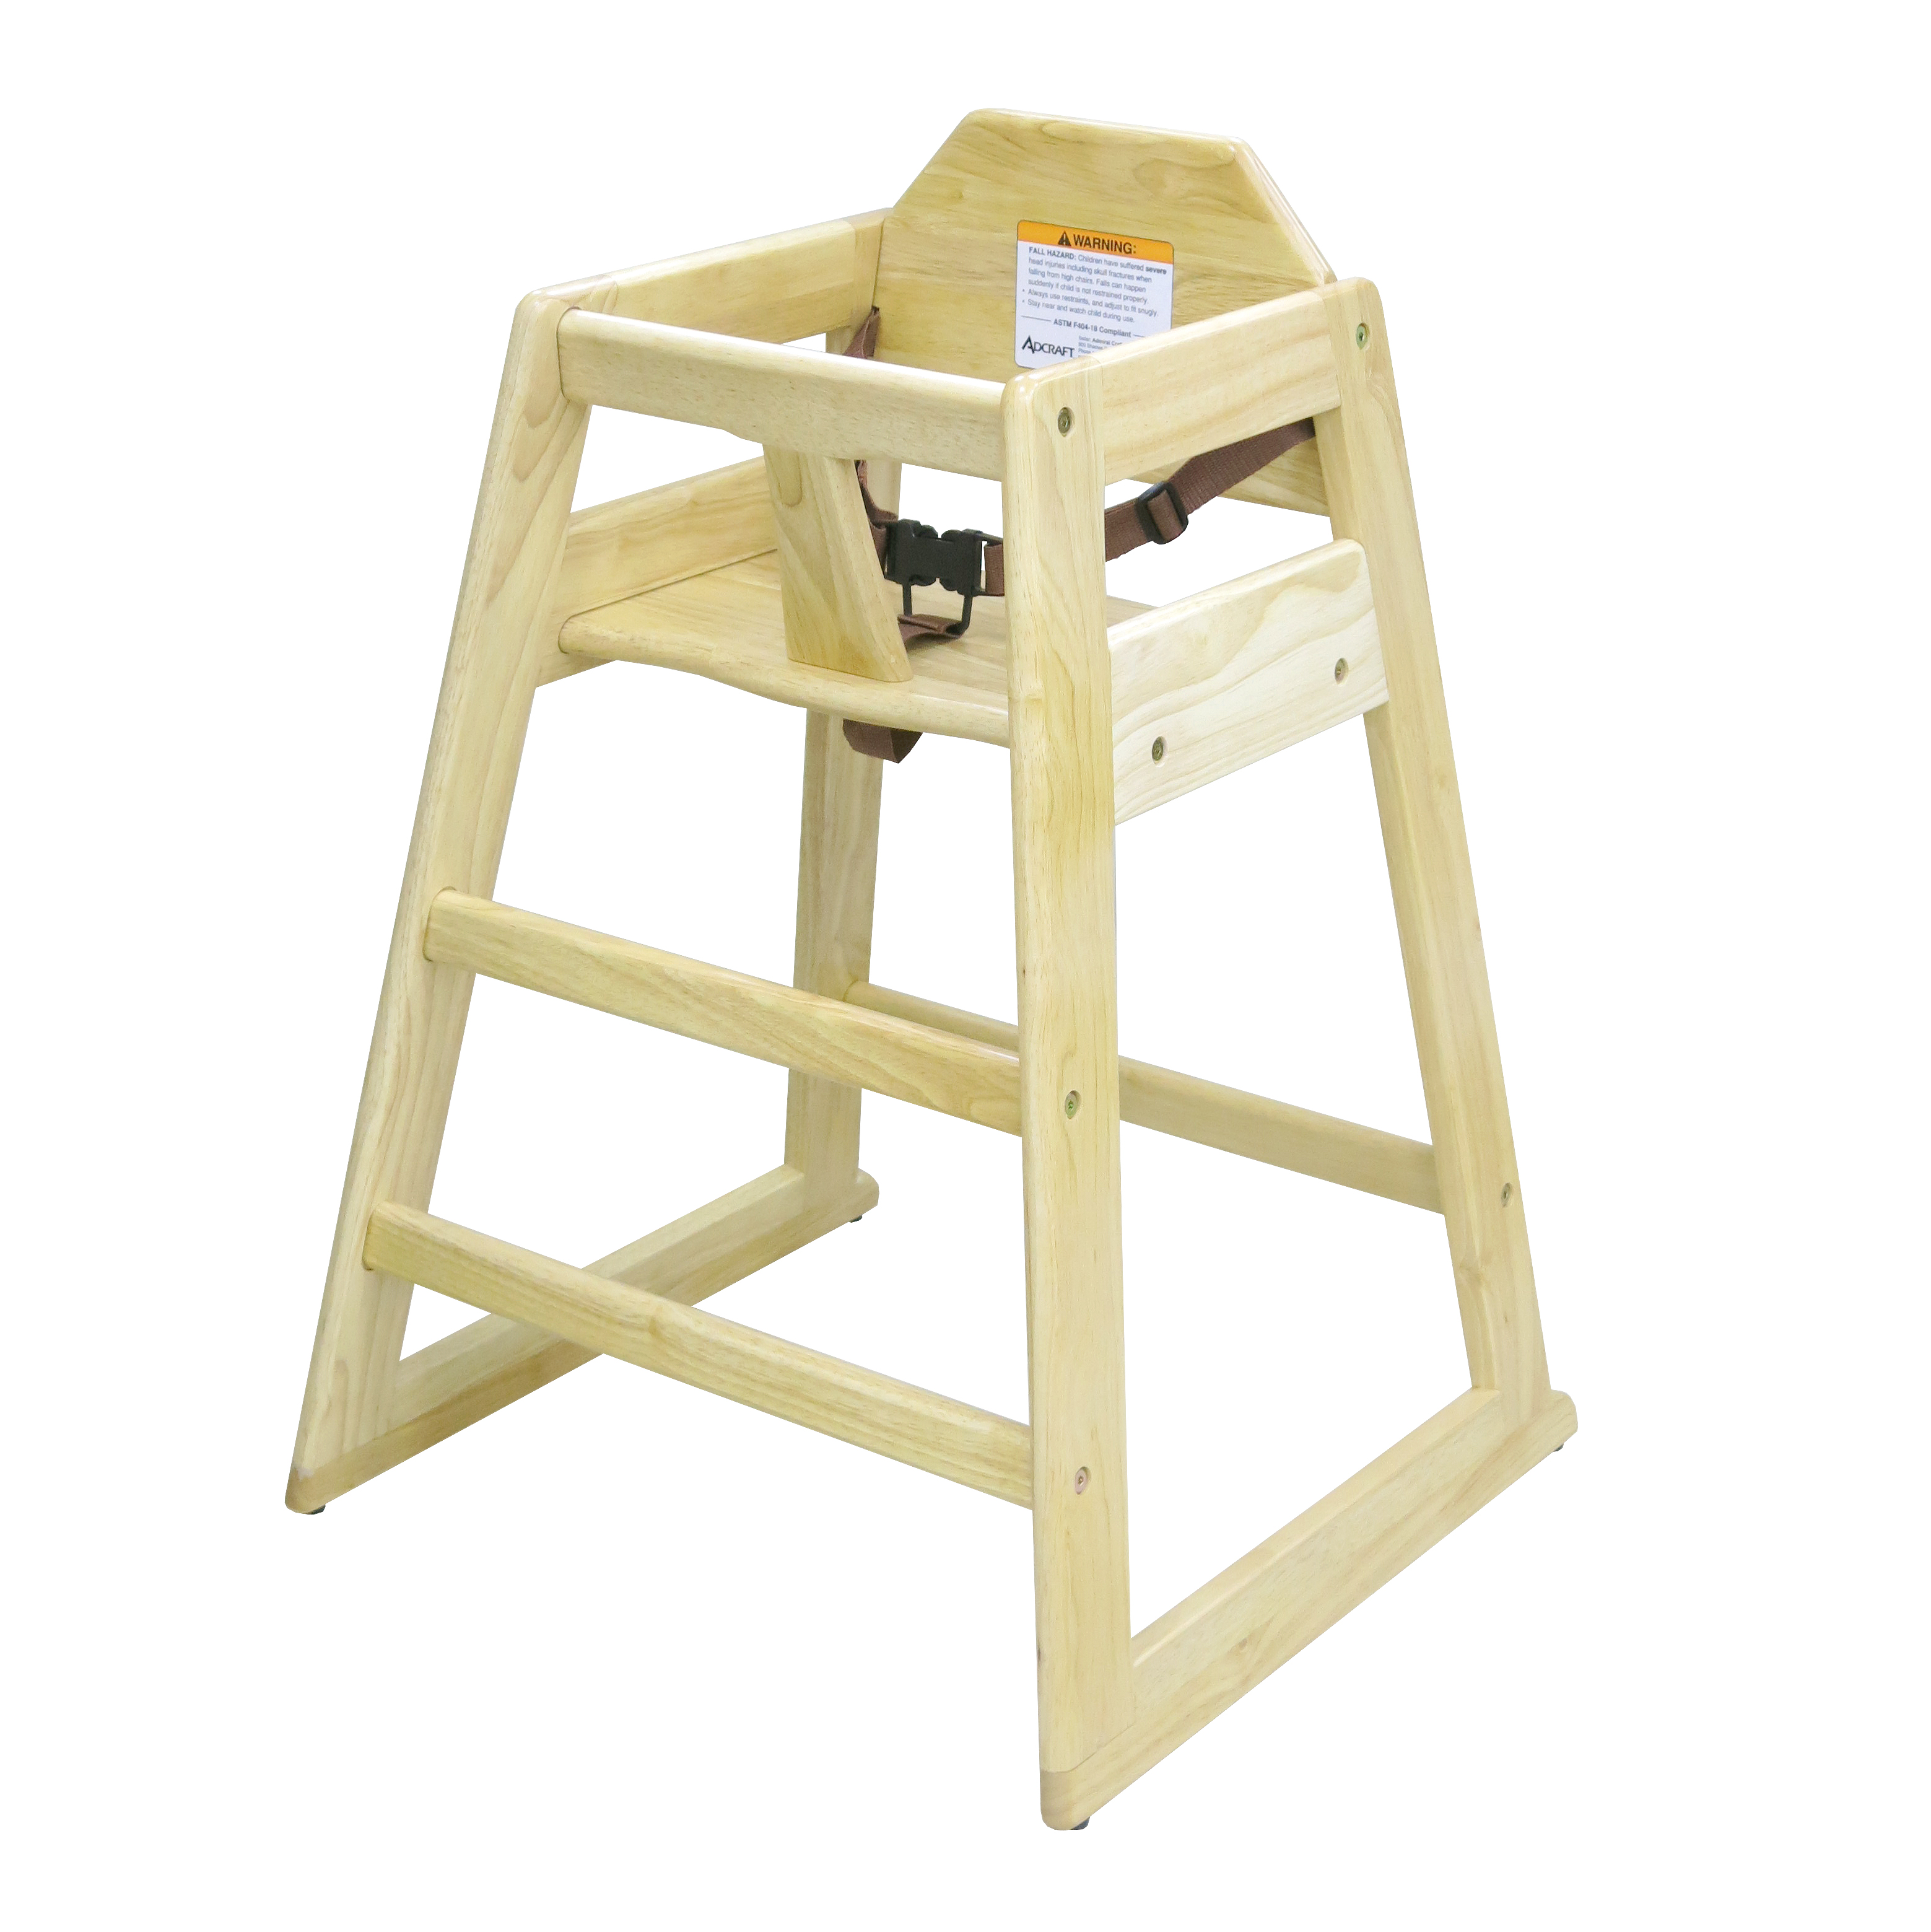 Admiral Craft HCW-1 high chair, wood